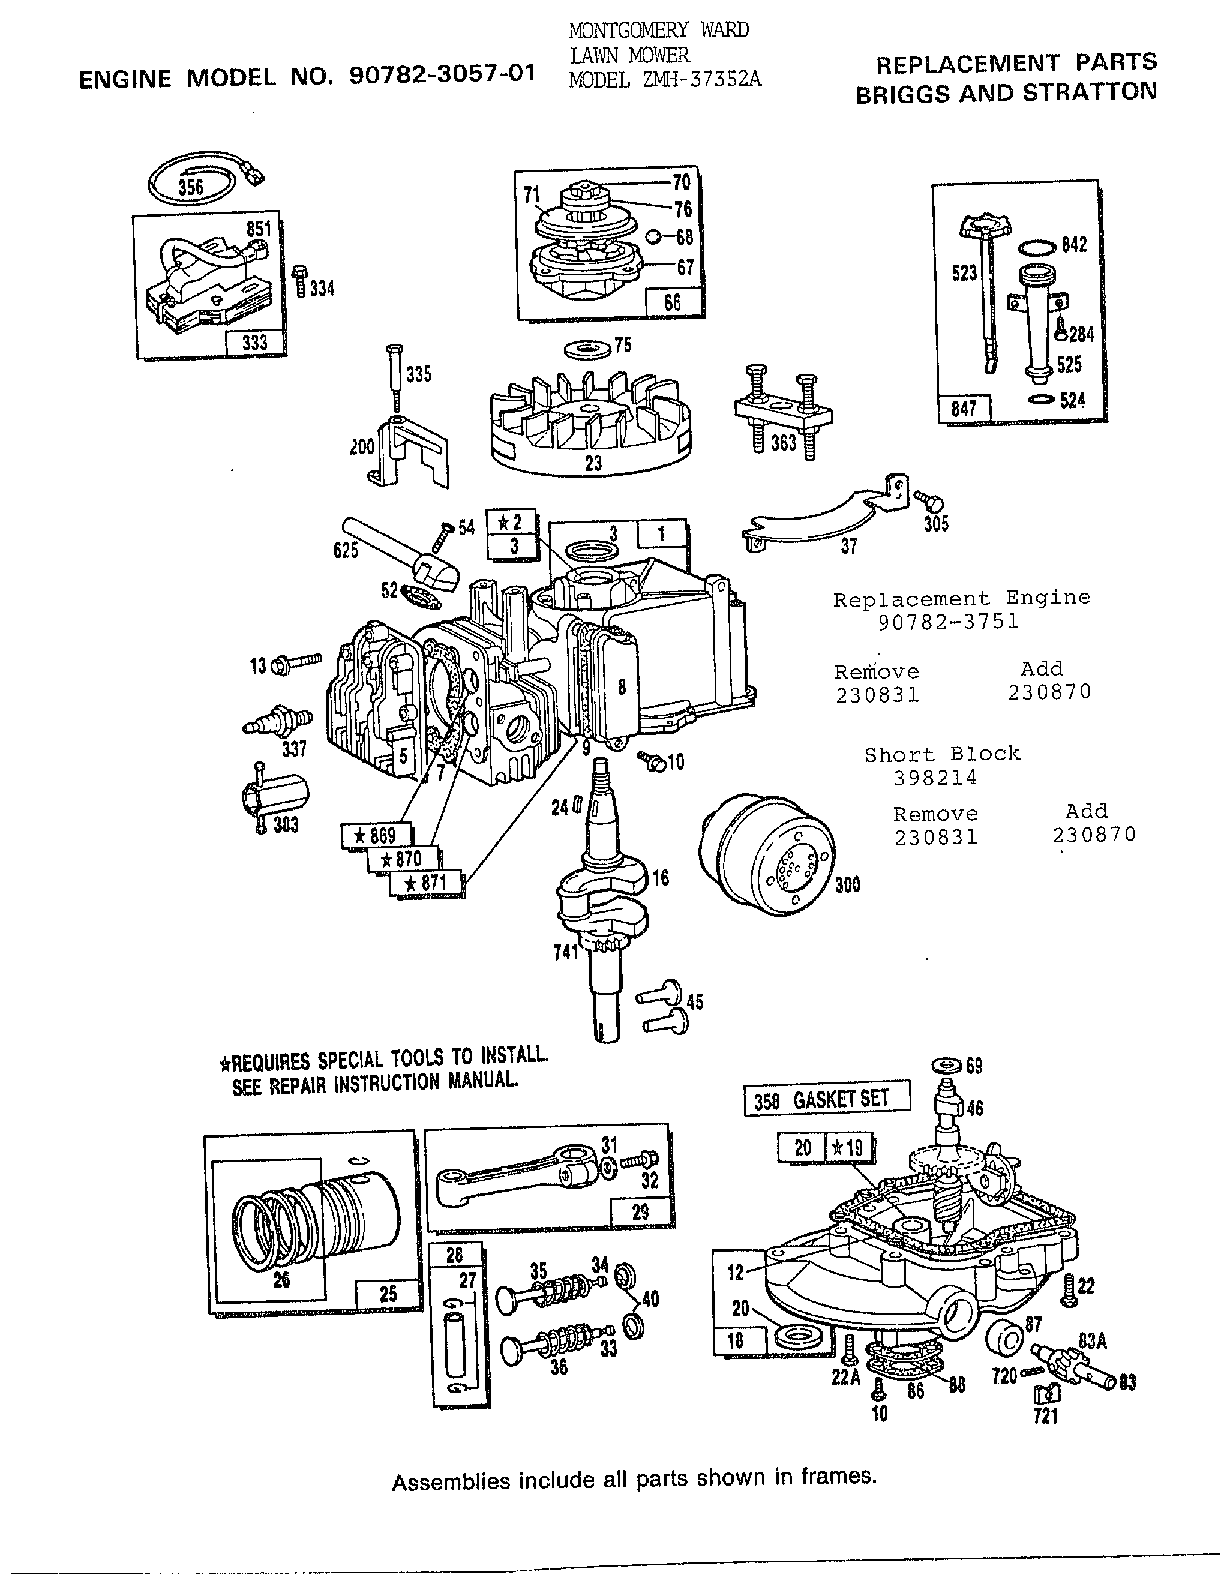 hight resolution of murray lawn mower engine diagram wiring diagram centre looking for murray model 37352a gas walk behind